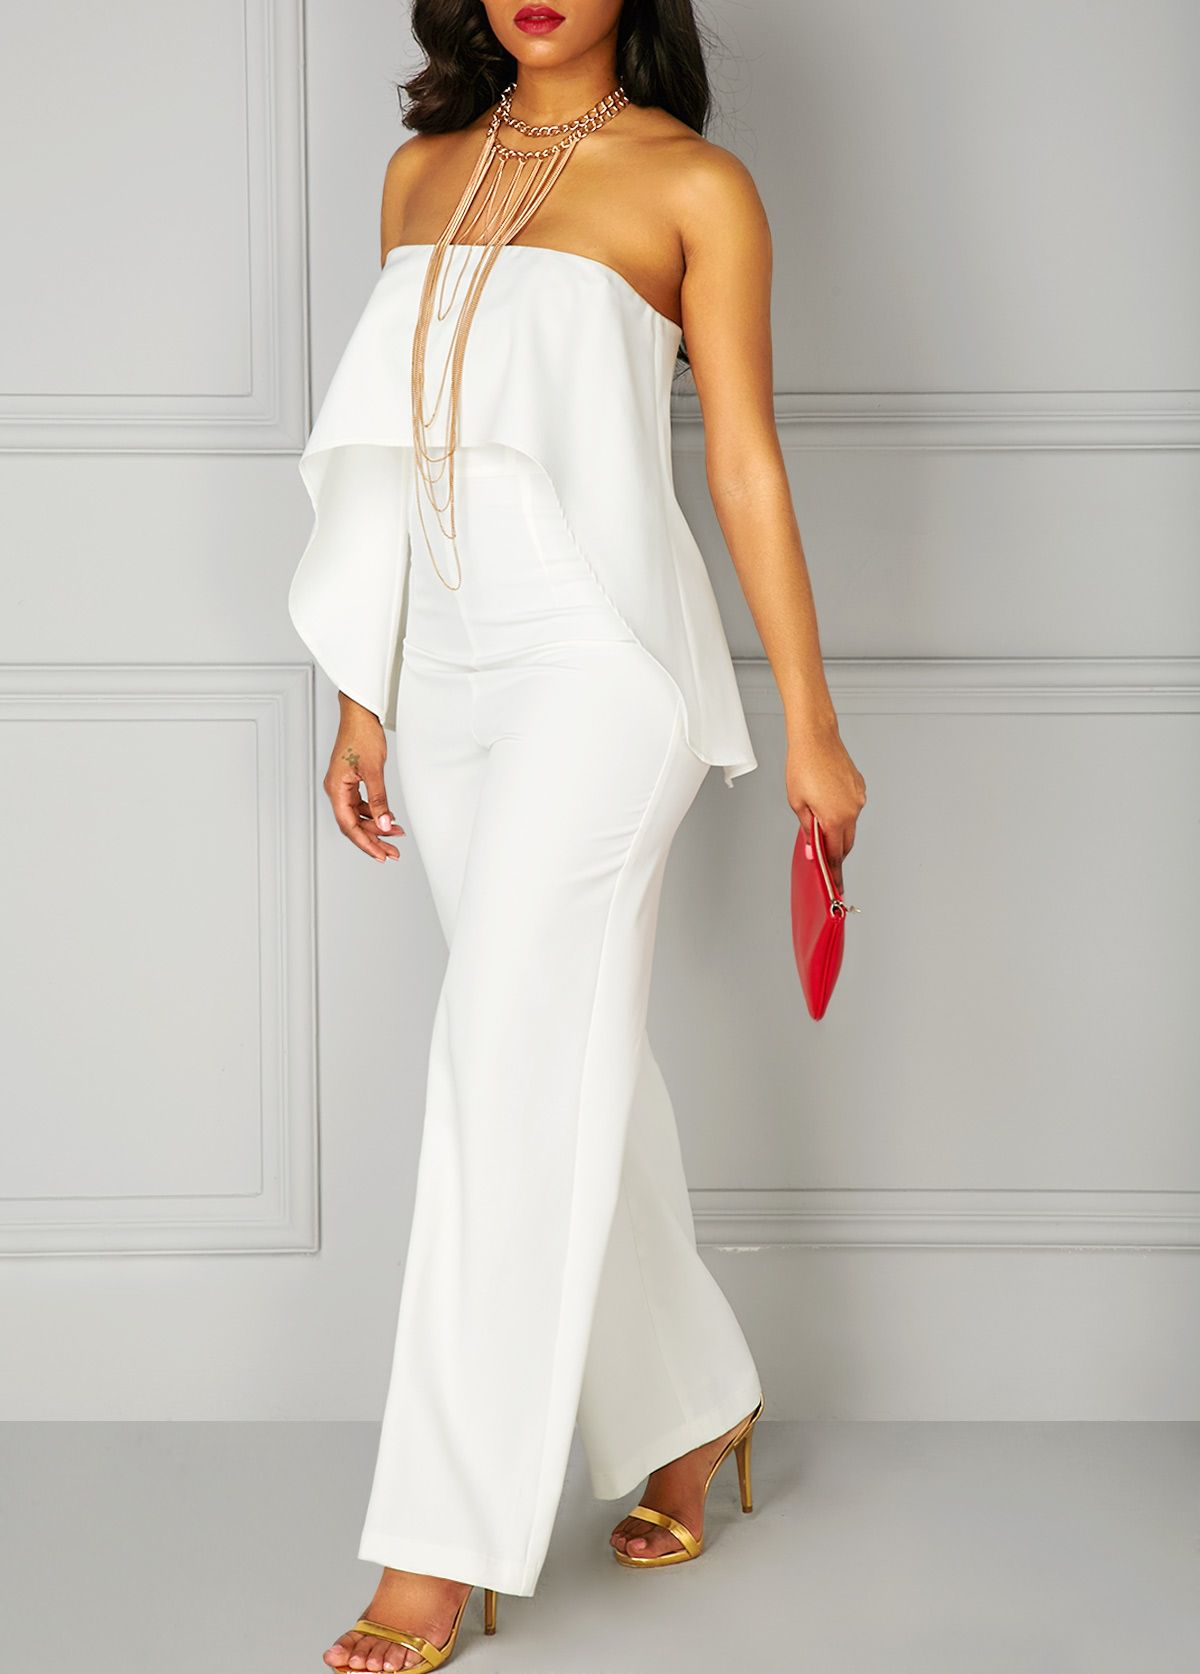 65246c20fb99 White Ruffle Overlay Strapless High Waist Jumpsuit on sale only US 35.84  now